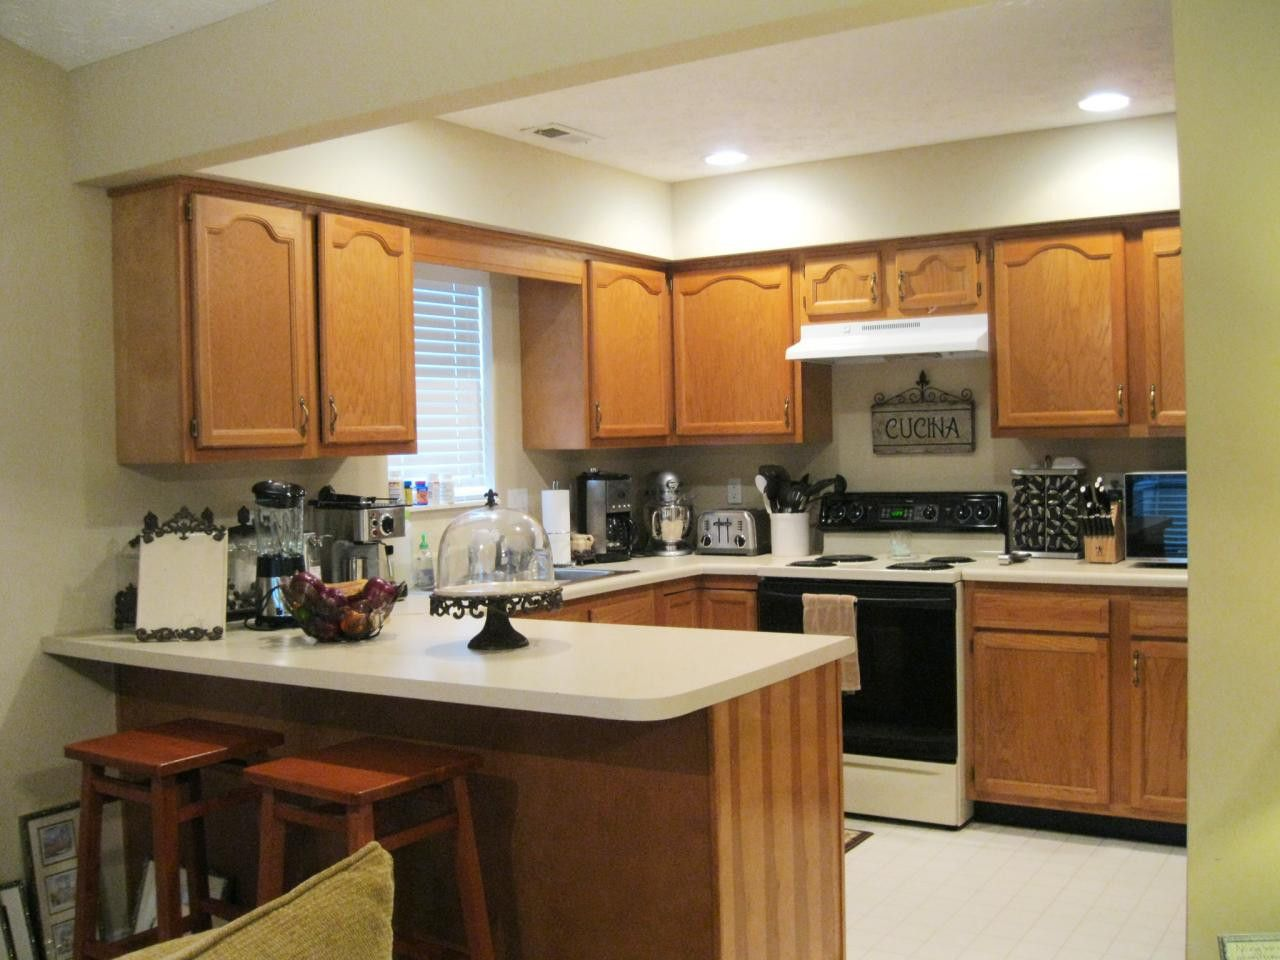 77 How To Stain Old Kitchen Cabinets Small Island Ideas With Seating Check